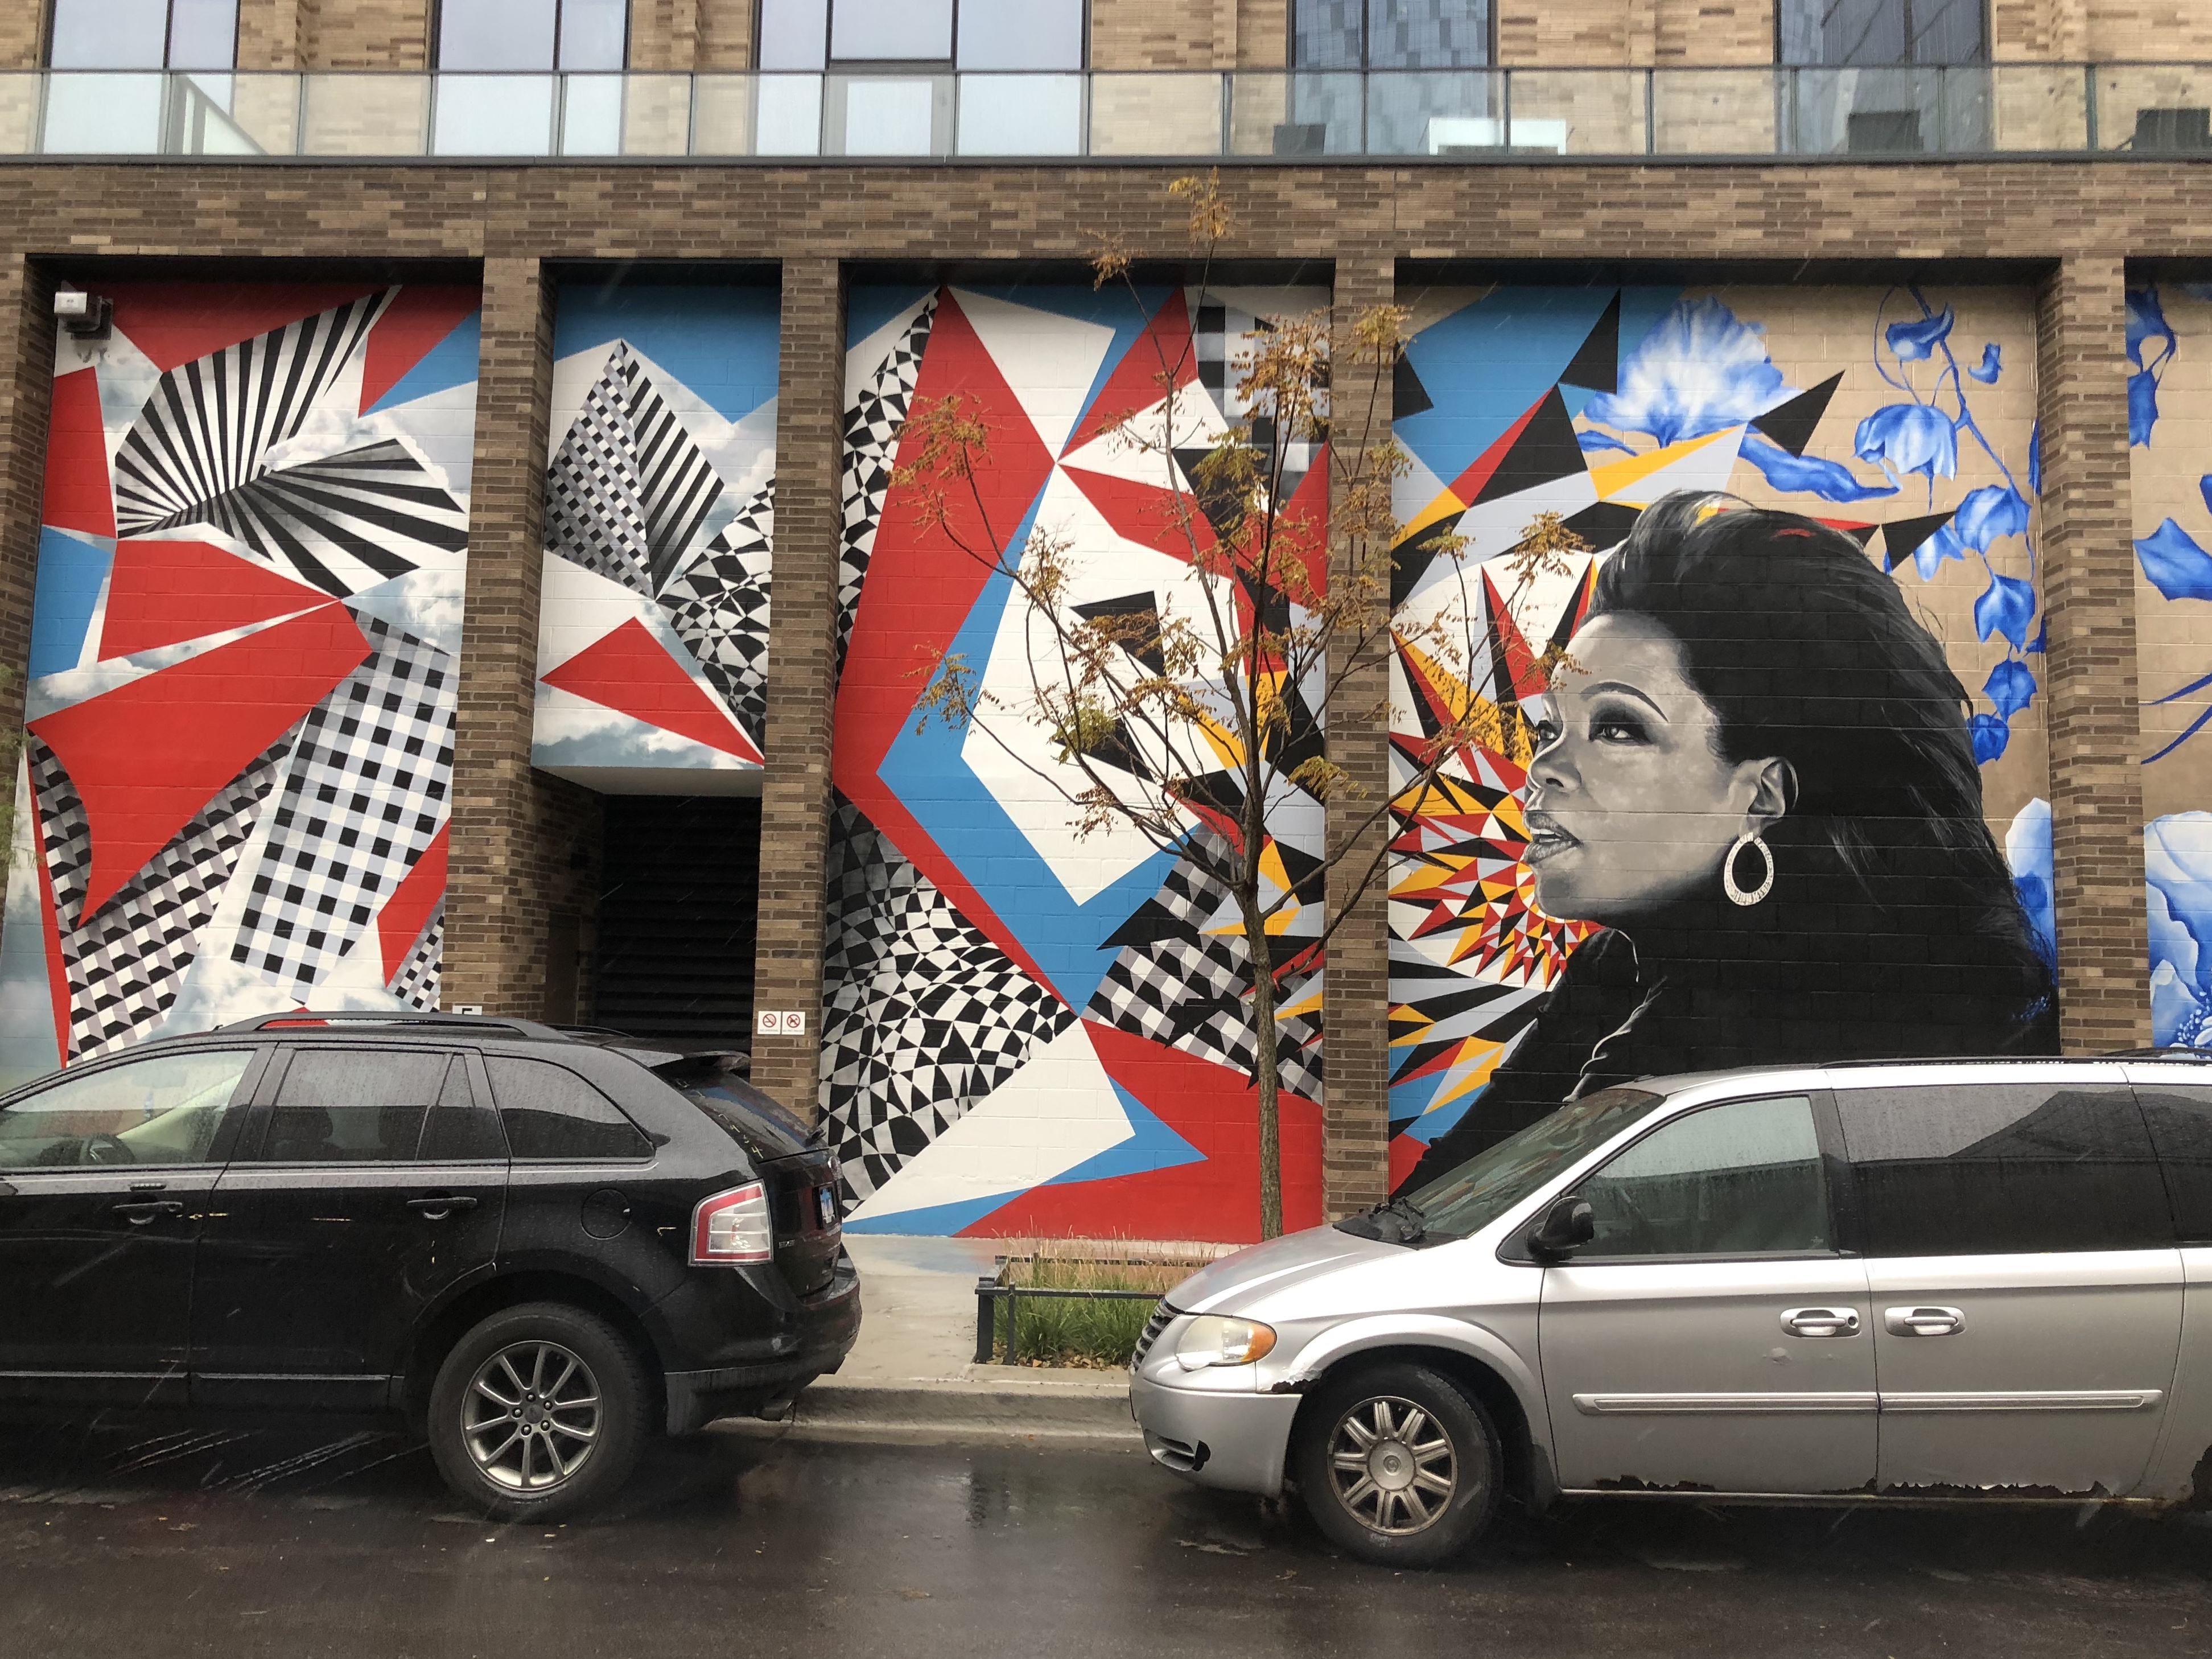 A new mural on the Porte Apartments, 855 W. Madison St. in the West Loop, is all about Oprah Winfrey, who for years taped her syndicated talk show nearby.